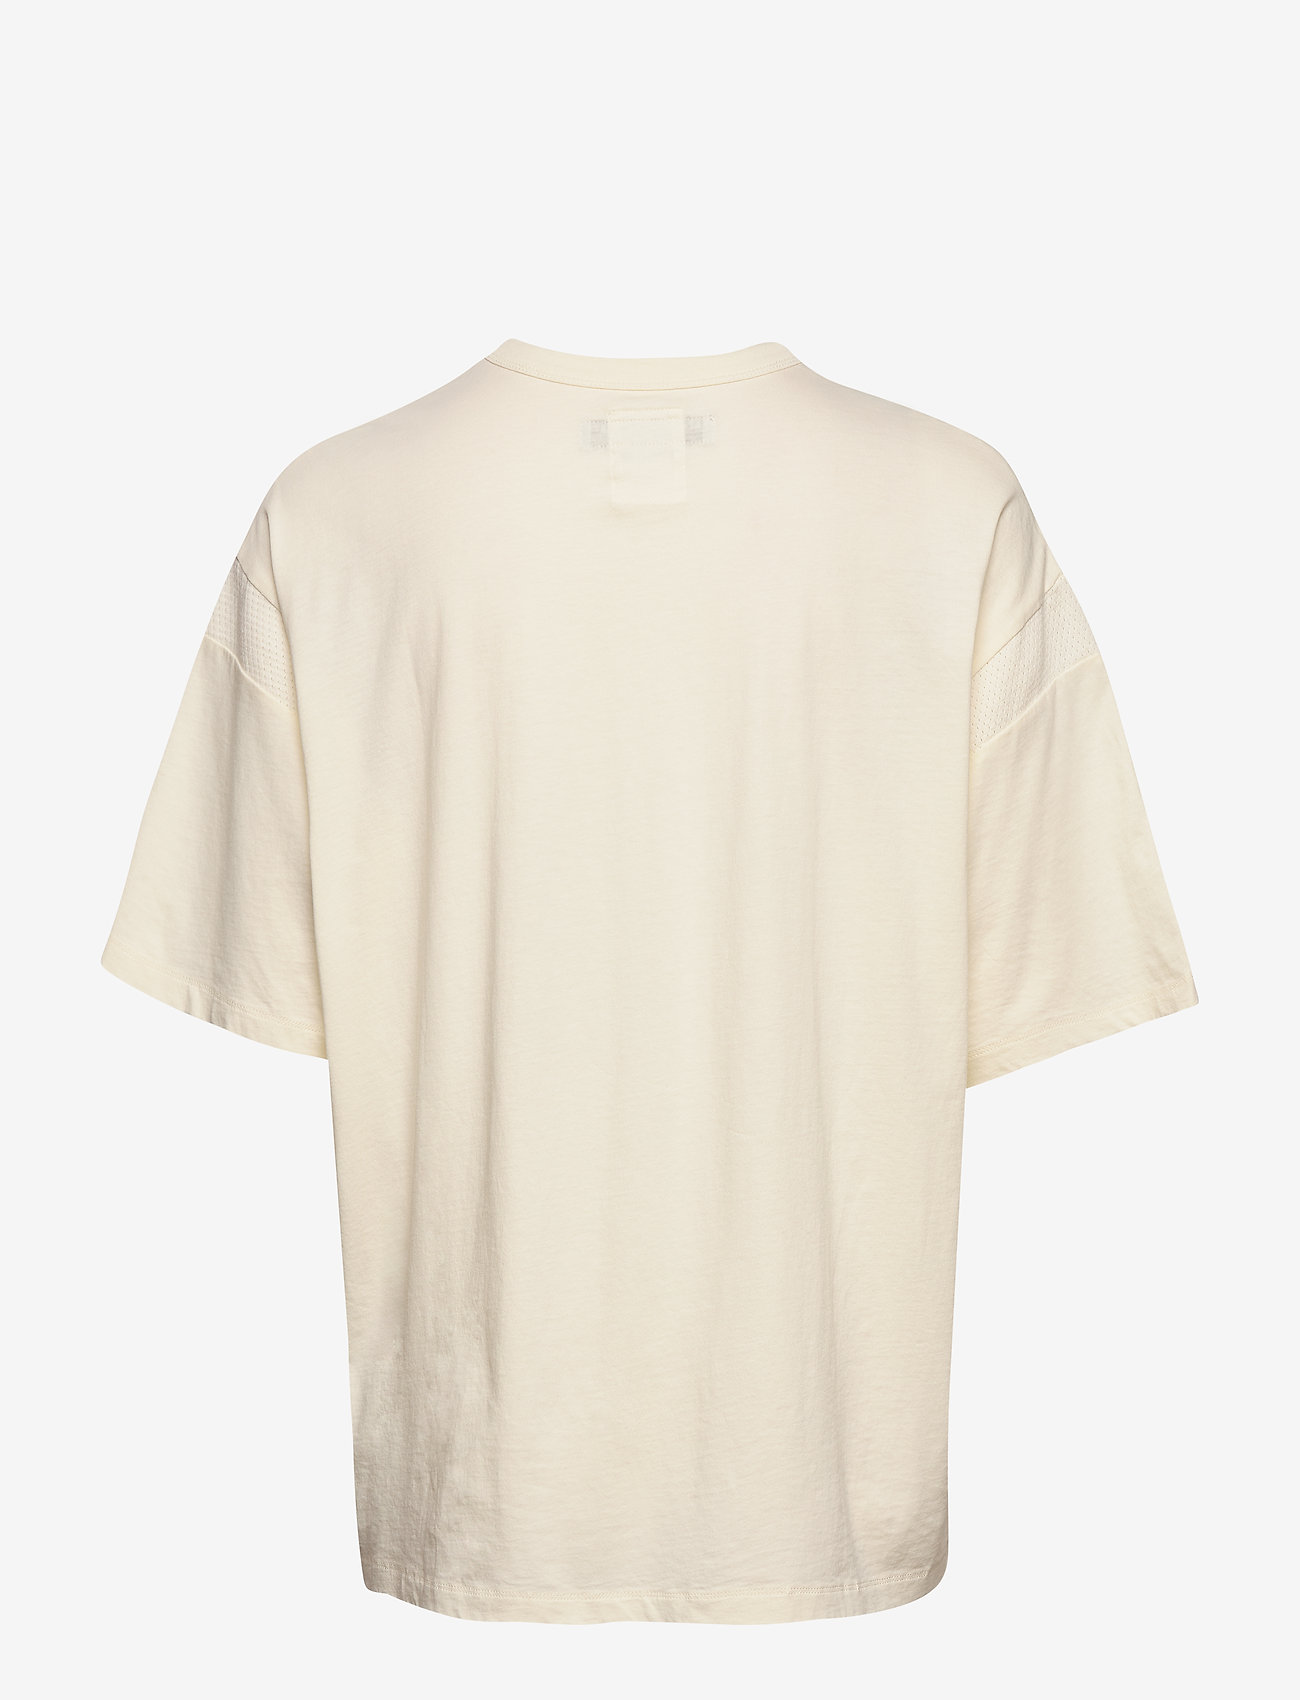 Wood Wood - Polly t-shirt - t-shirts - off-white - 1